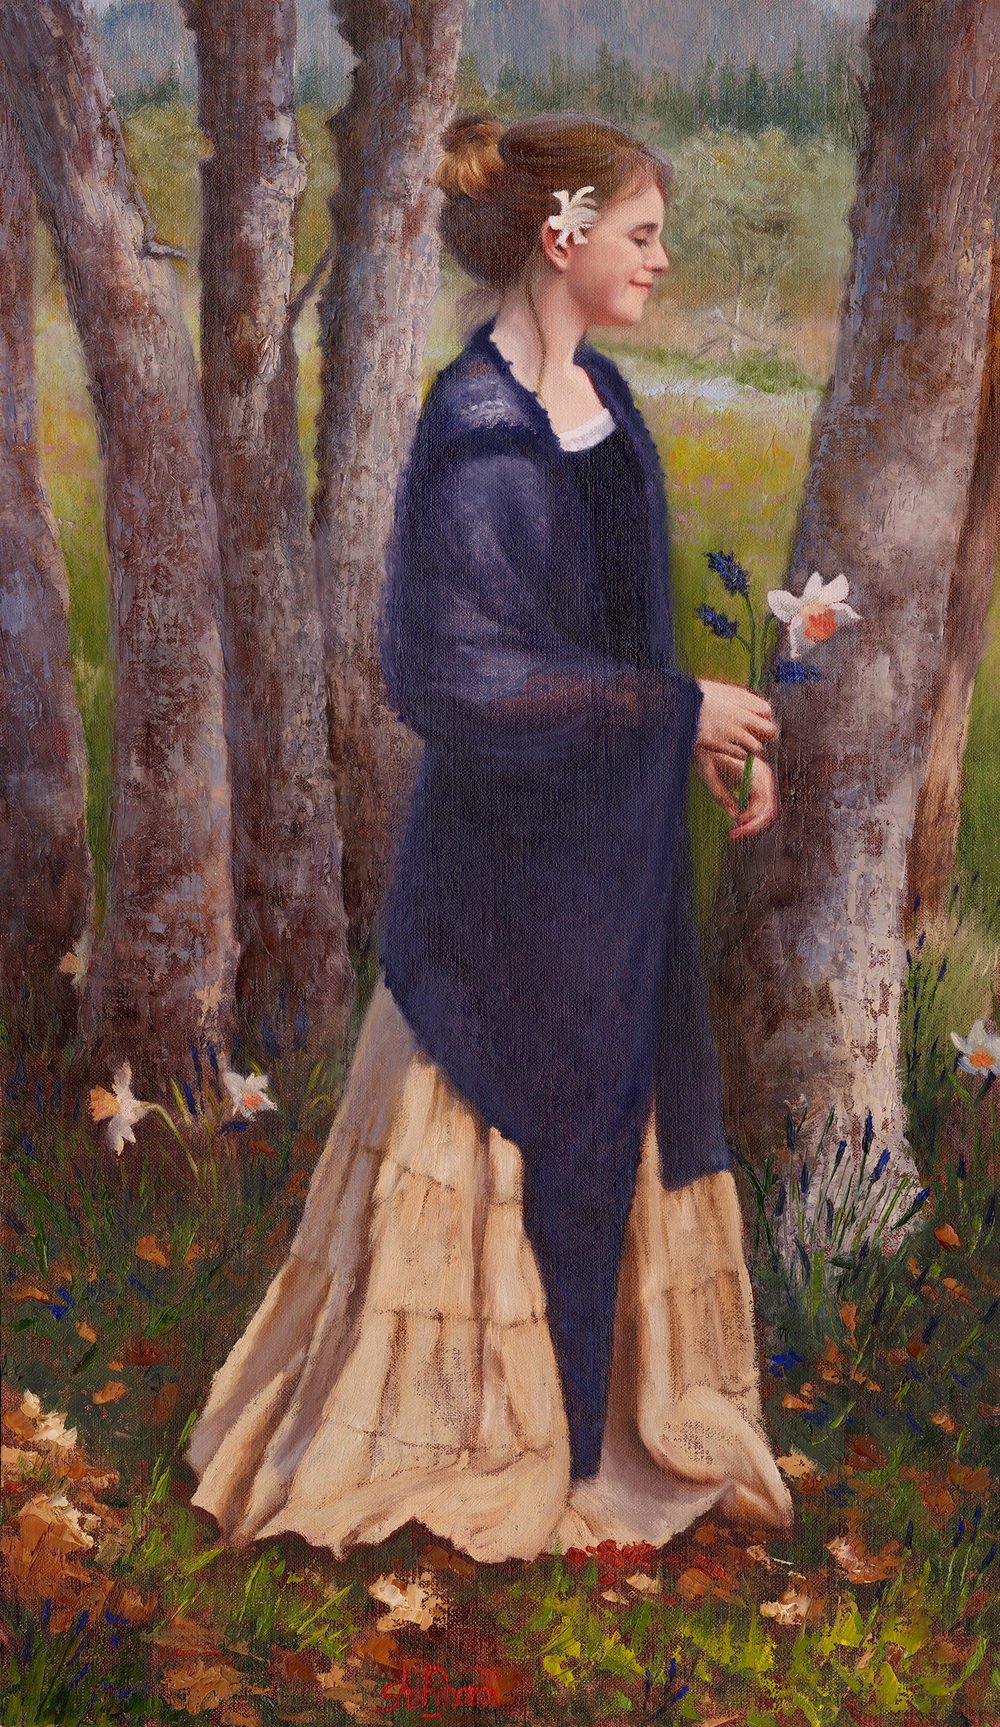 Coming into Spring  - 26 x 15 Oil on Linen